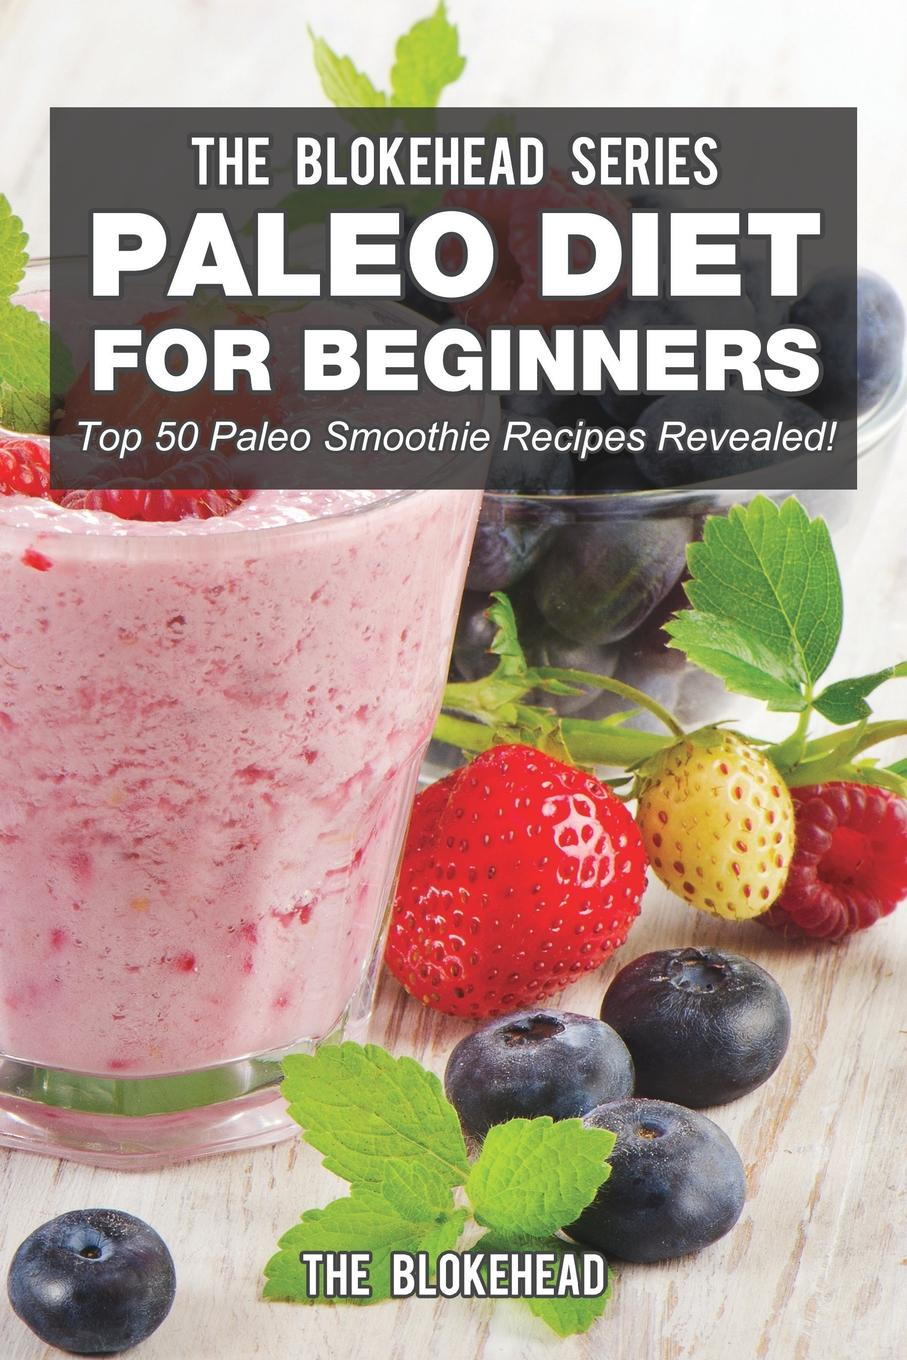 The Blokehead Paleo Diet For Beginners. Top 50 Paleo Smoothie Recipes Revealed! hempz fresh coconut